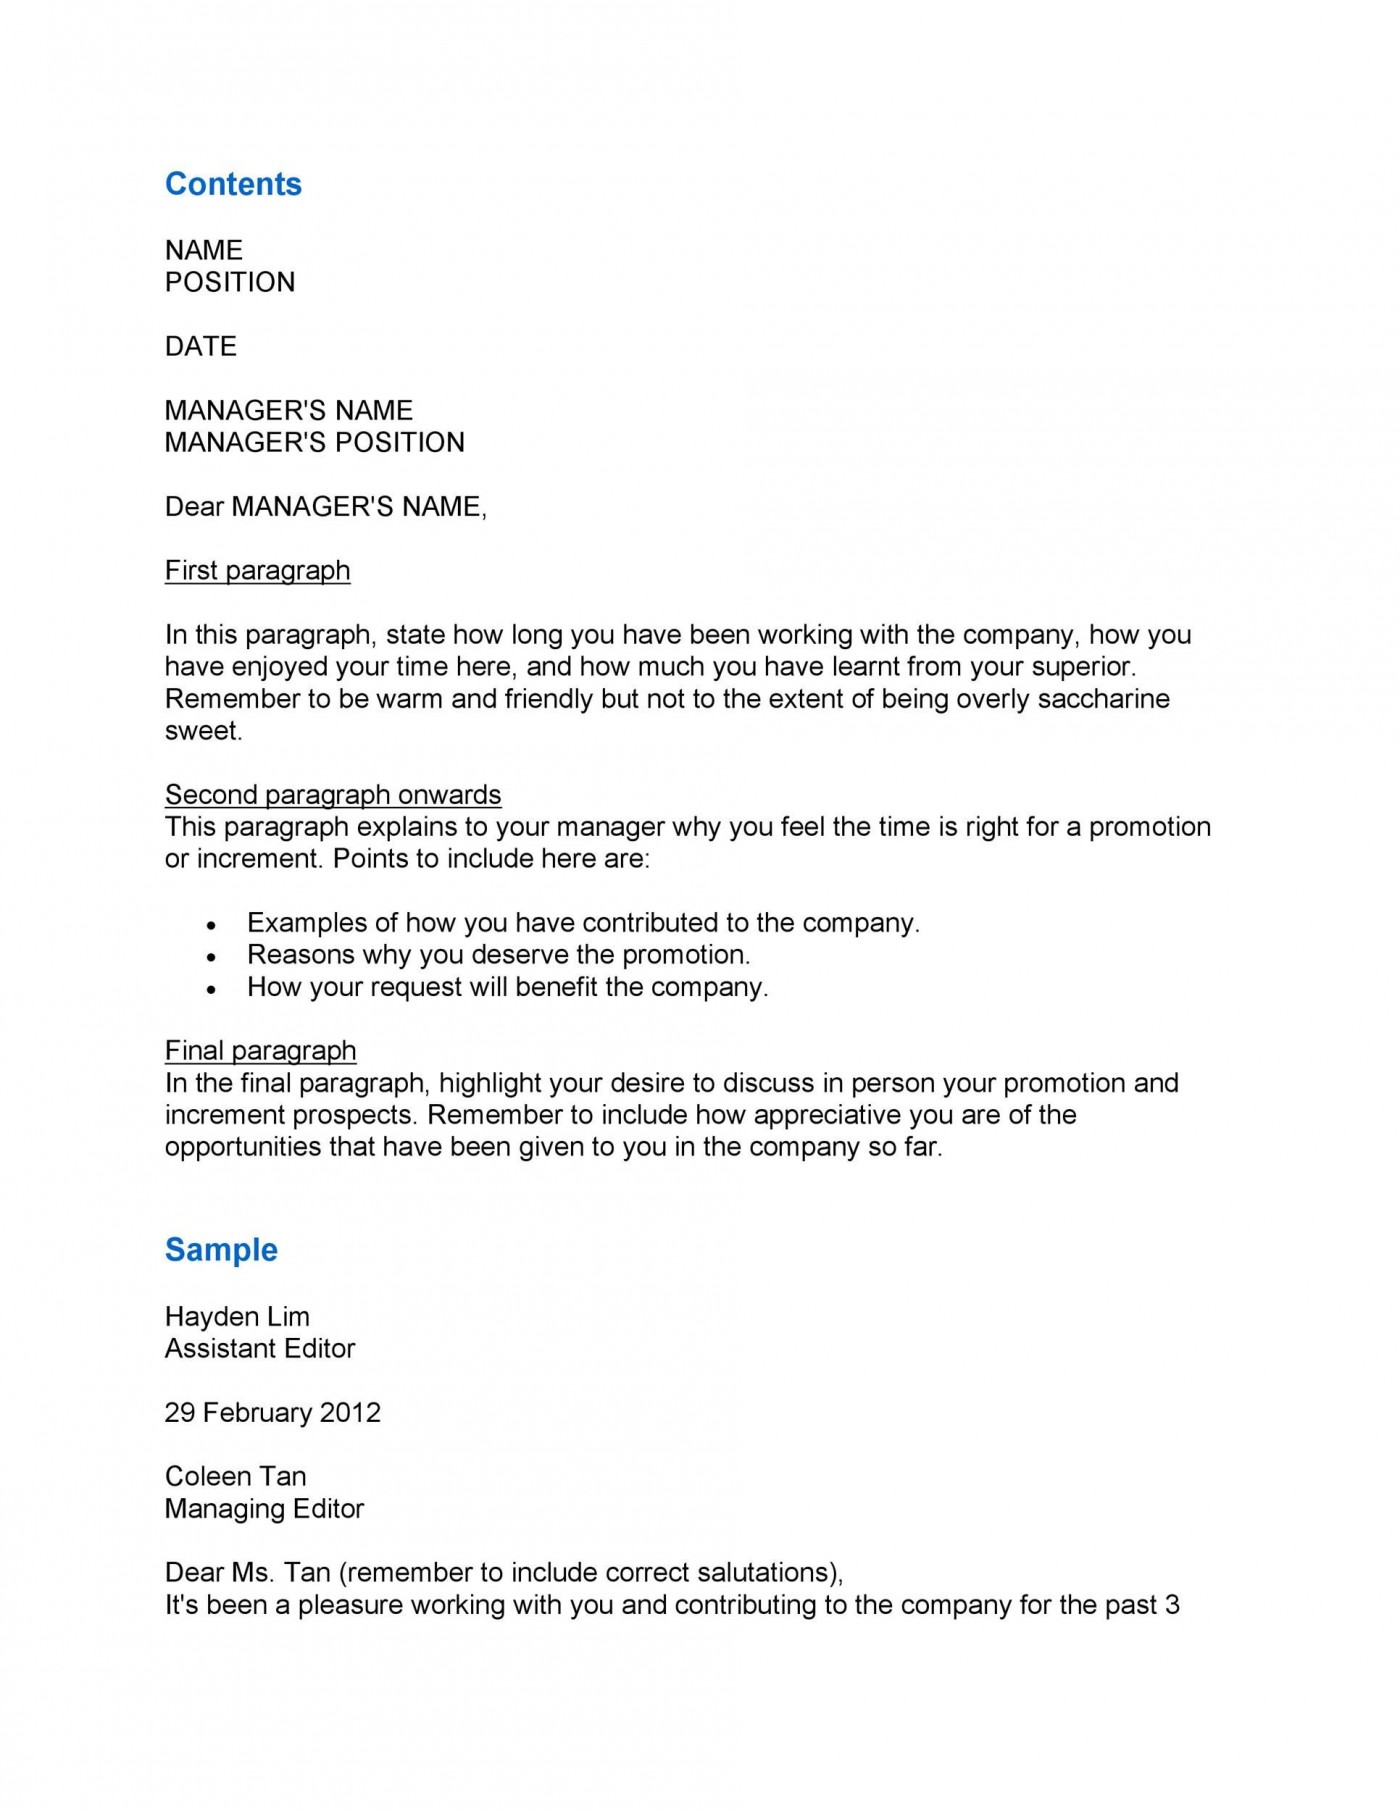 008 Fascinating Salary Increase Letter Template Picture  From Employer To Employee Australia No For1400